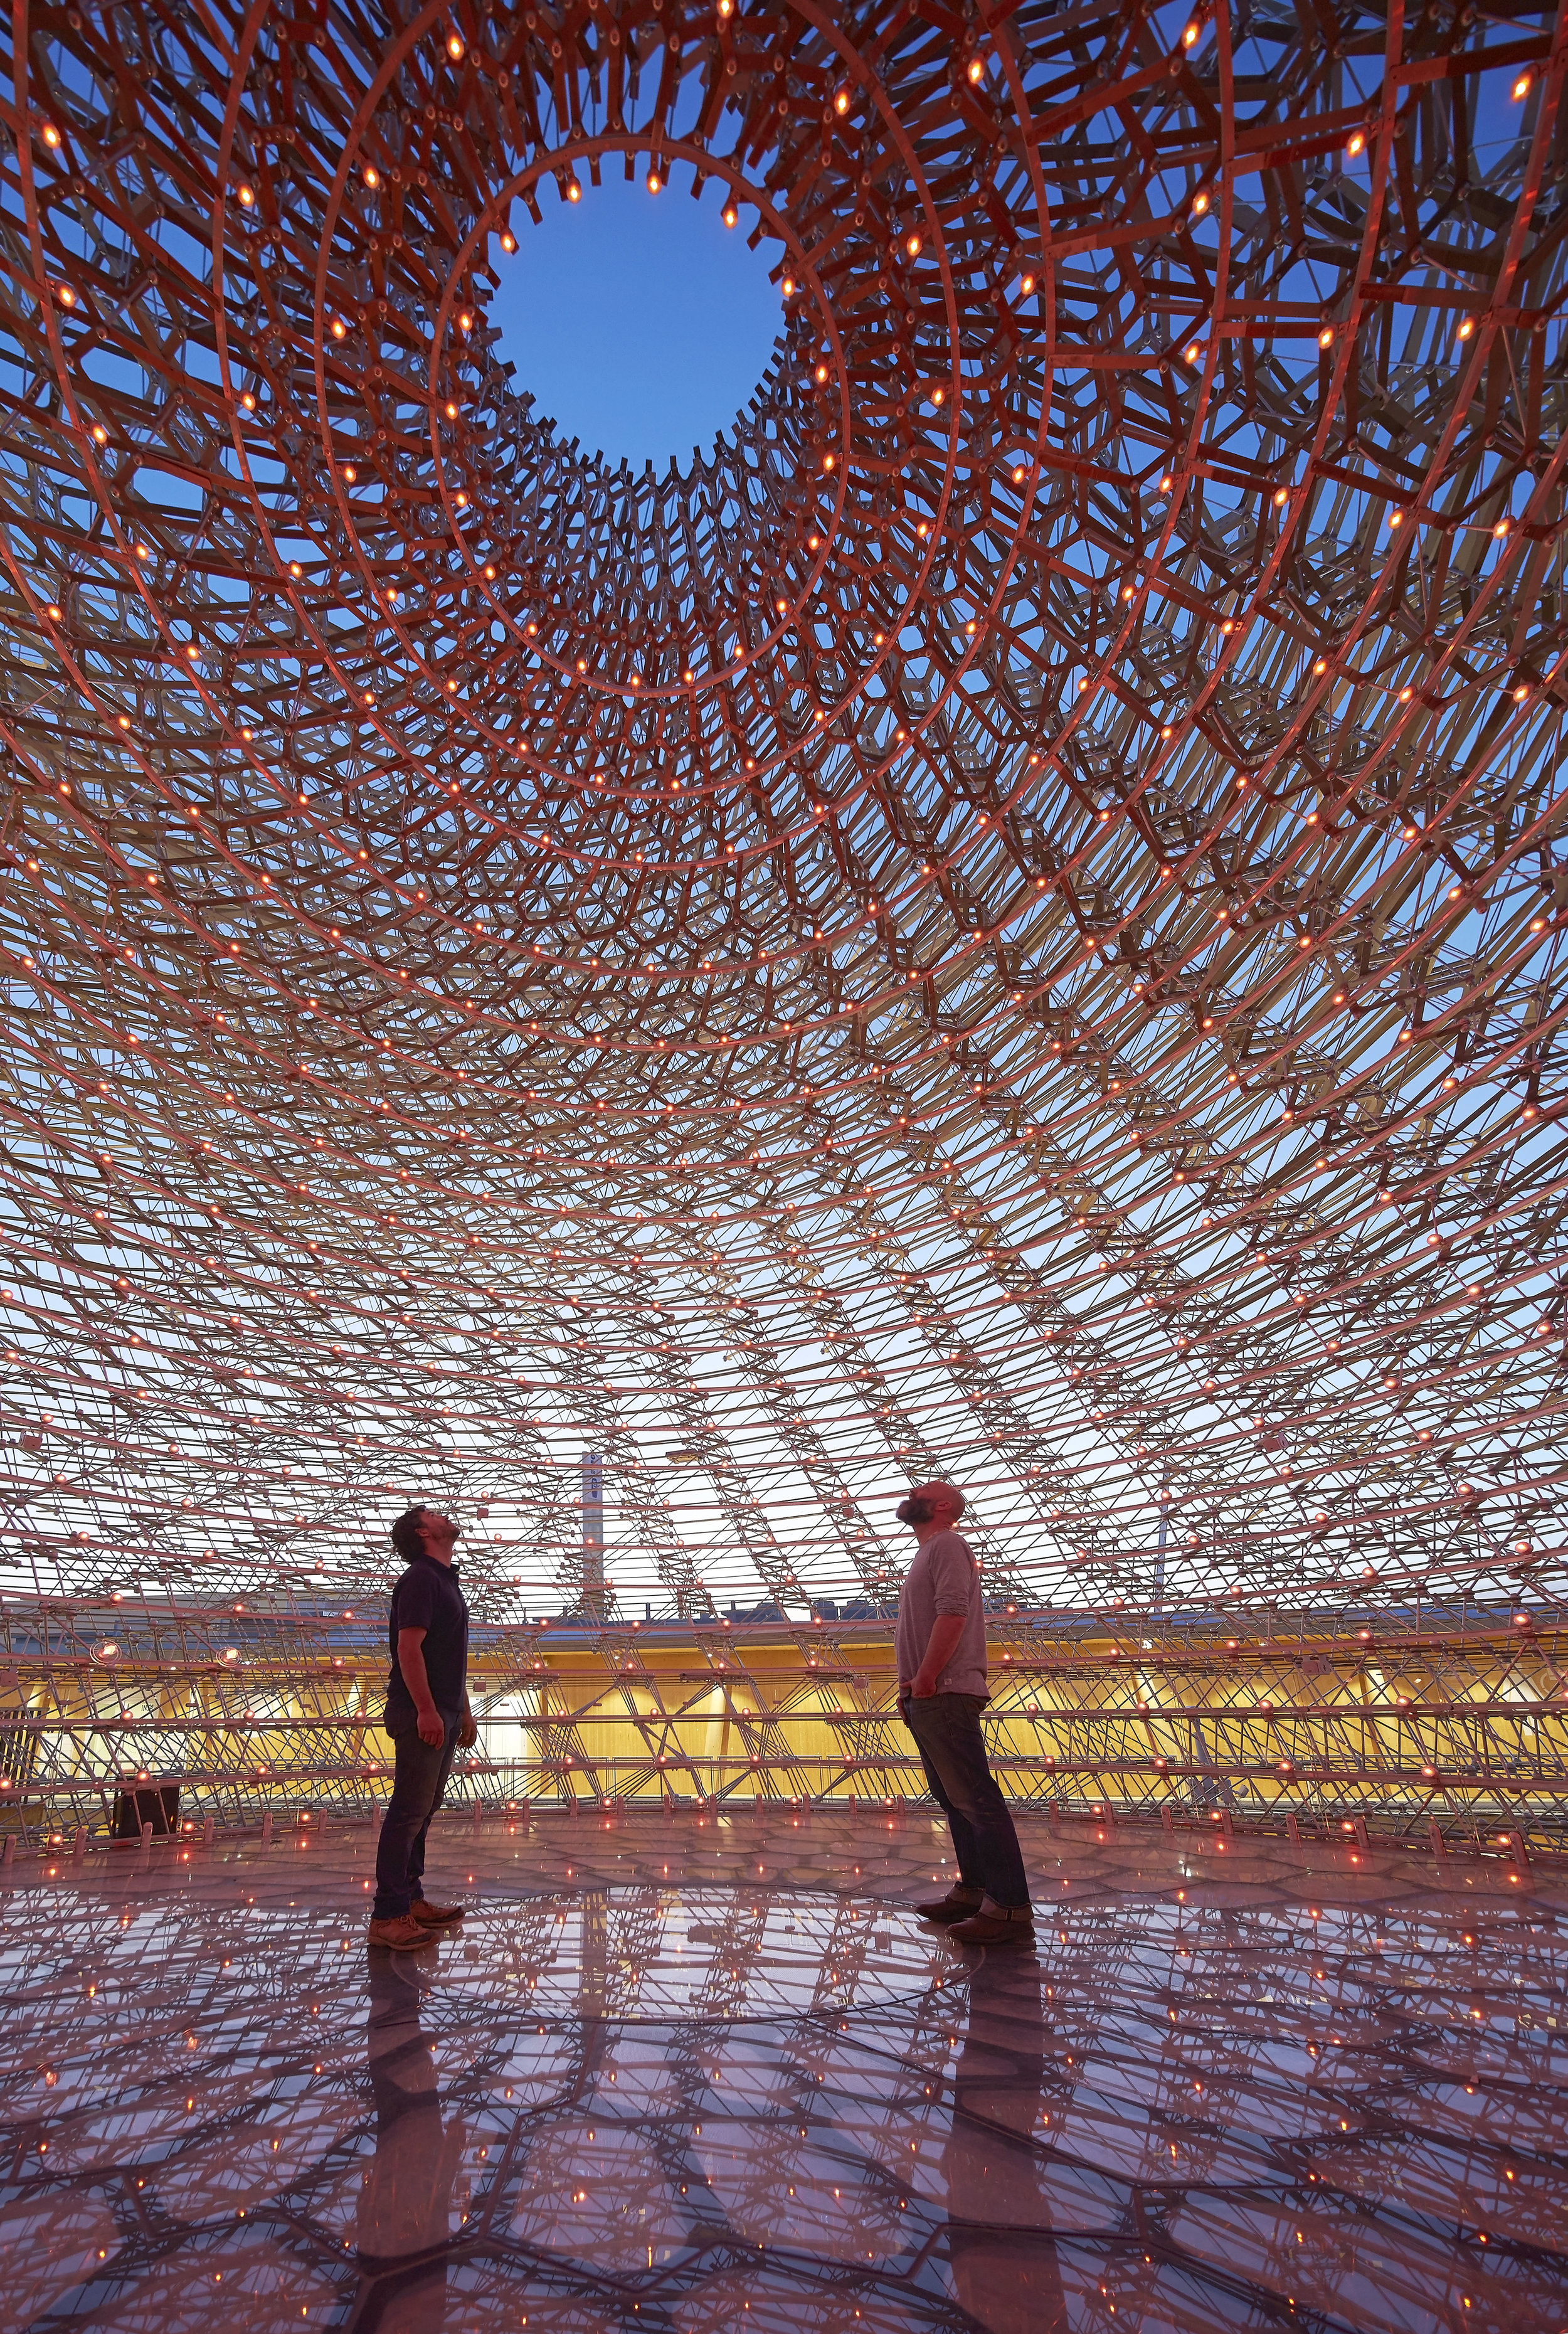 Inside The Hive at Milan Expo 2015 - image:  Hufton & Crow